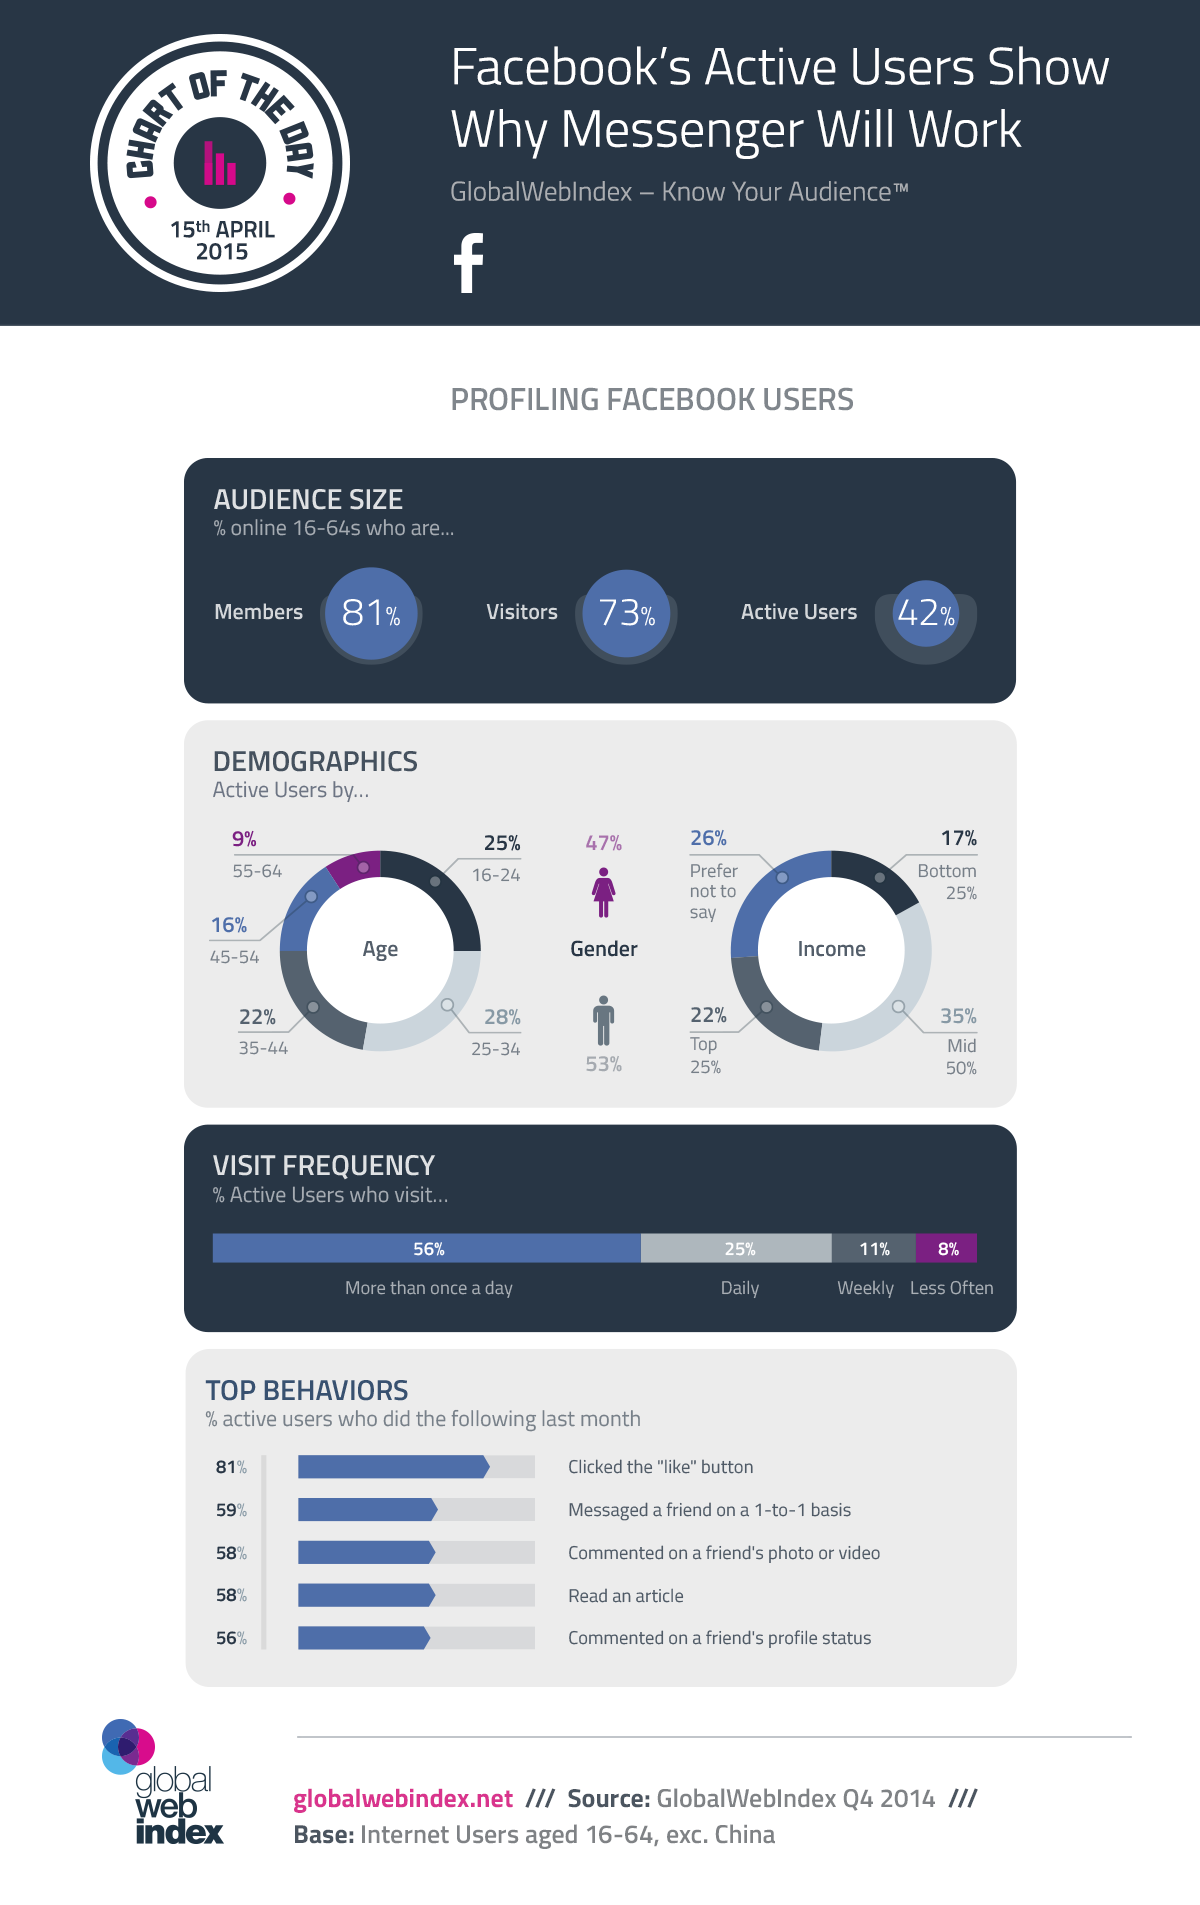 15th-April-2015-Facebooks-Active-Users-Show-Why-Messenger-Will-Work